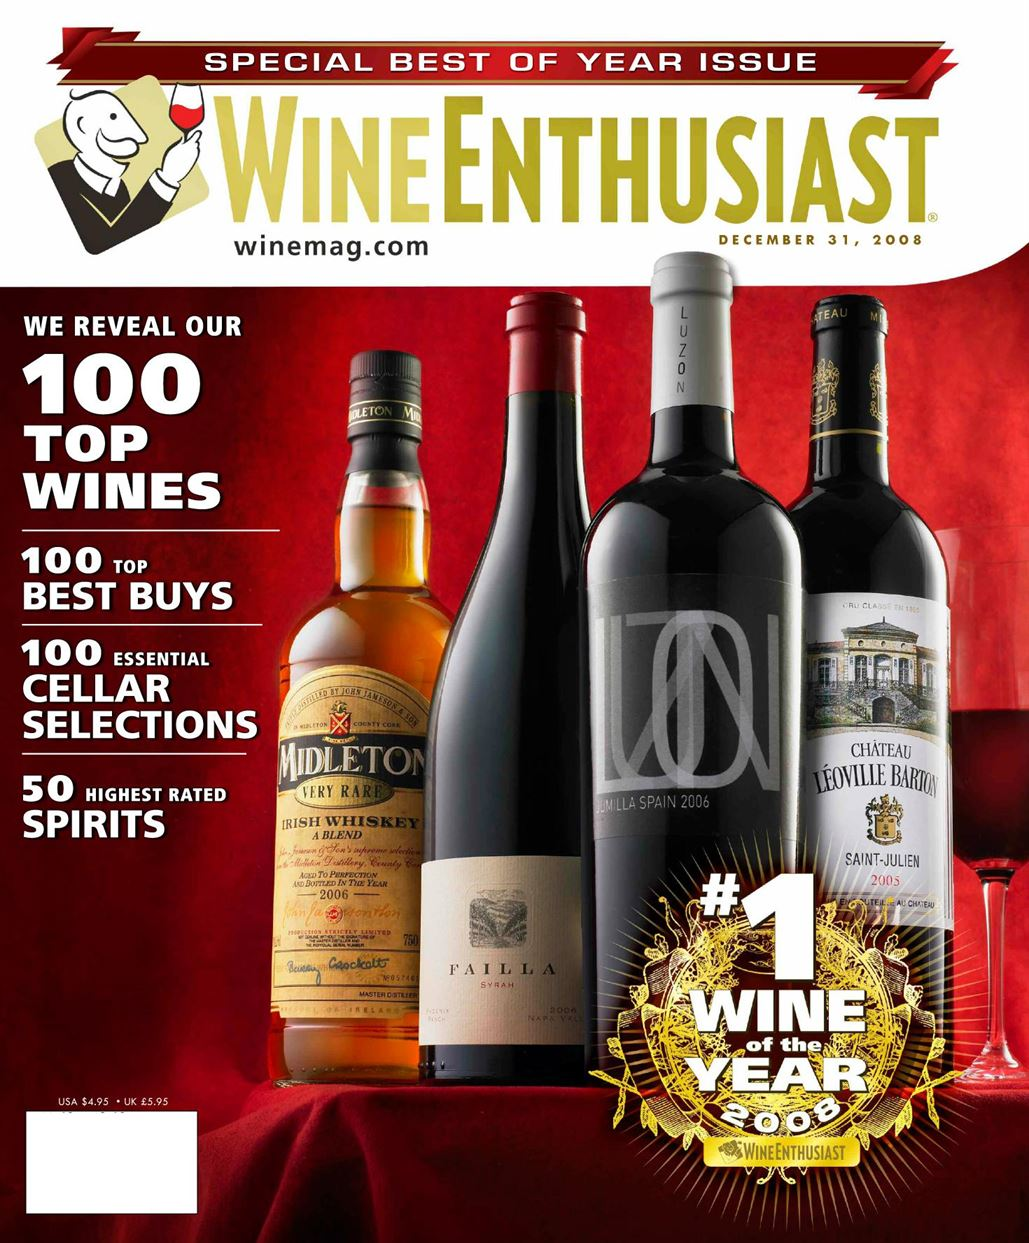 Wine Enthusiast Magazine brings you acclaimed wine ratings and reviews, unique recipes ideas, pairing information, news coverage and helpful guides.